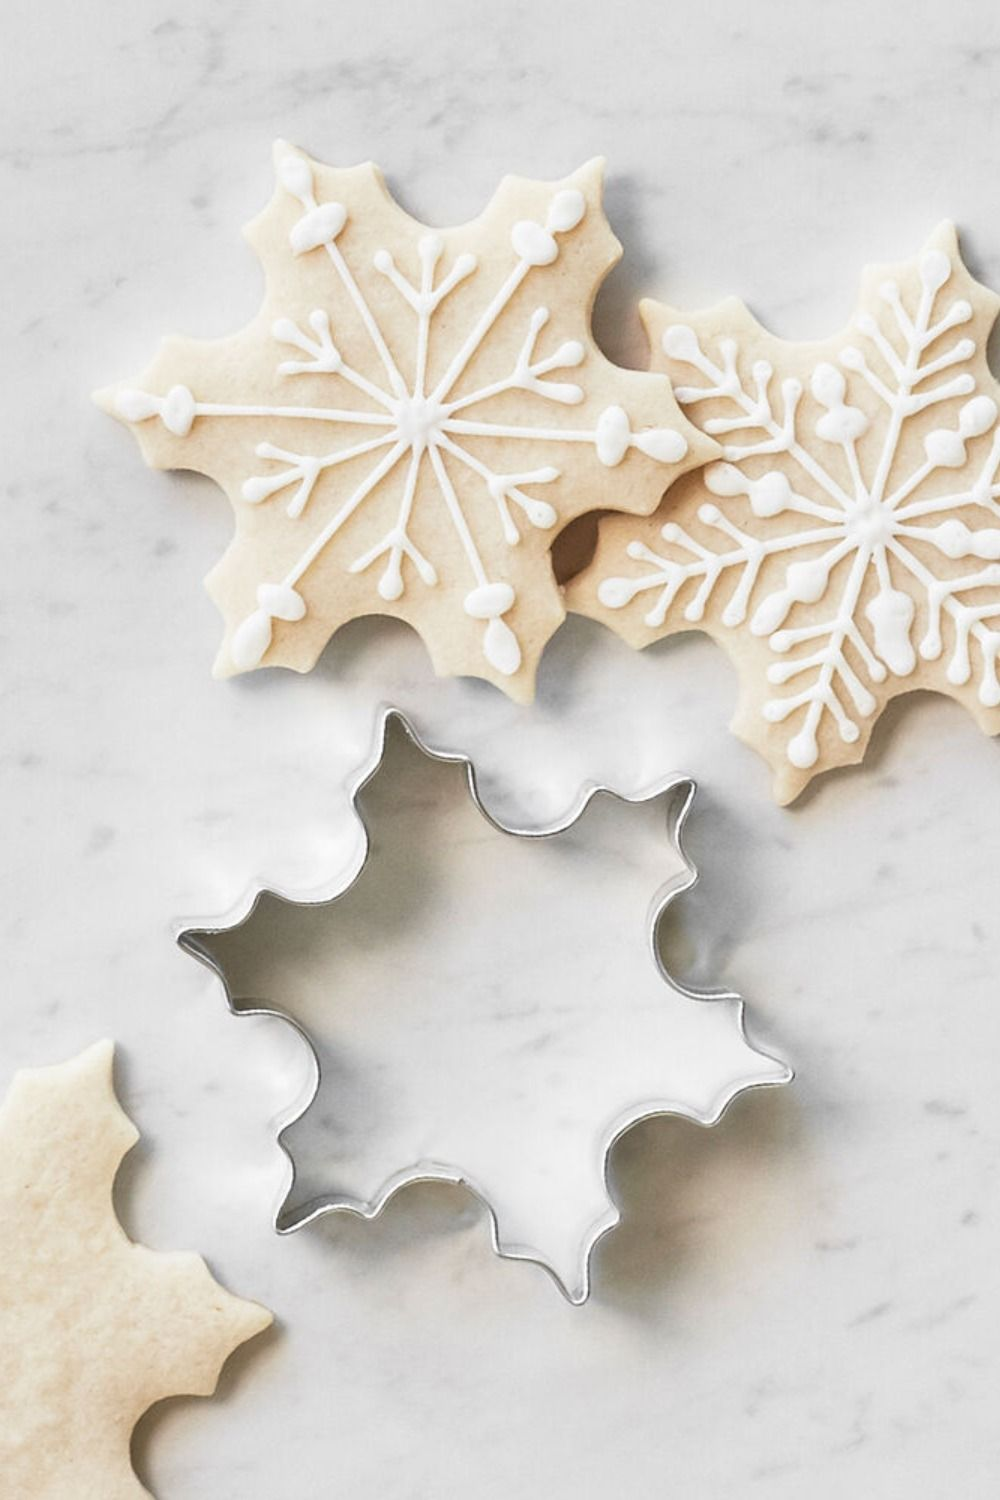 Photo of Classic Sugar Cookie Mix With Icing Mix & Snowflake Cookie Cutter